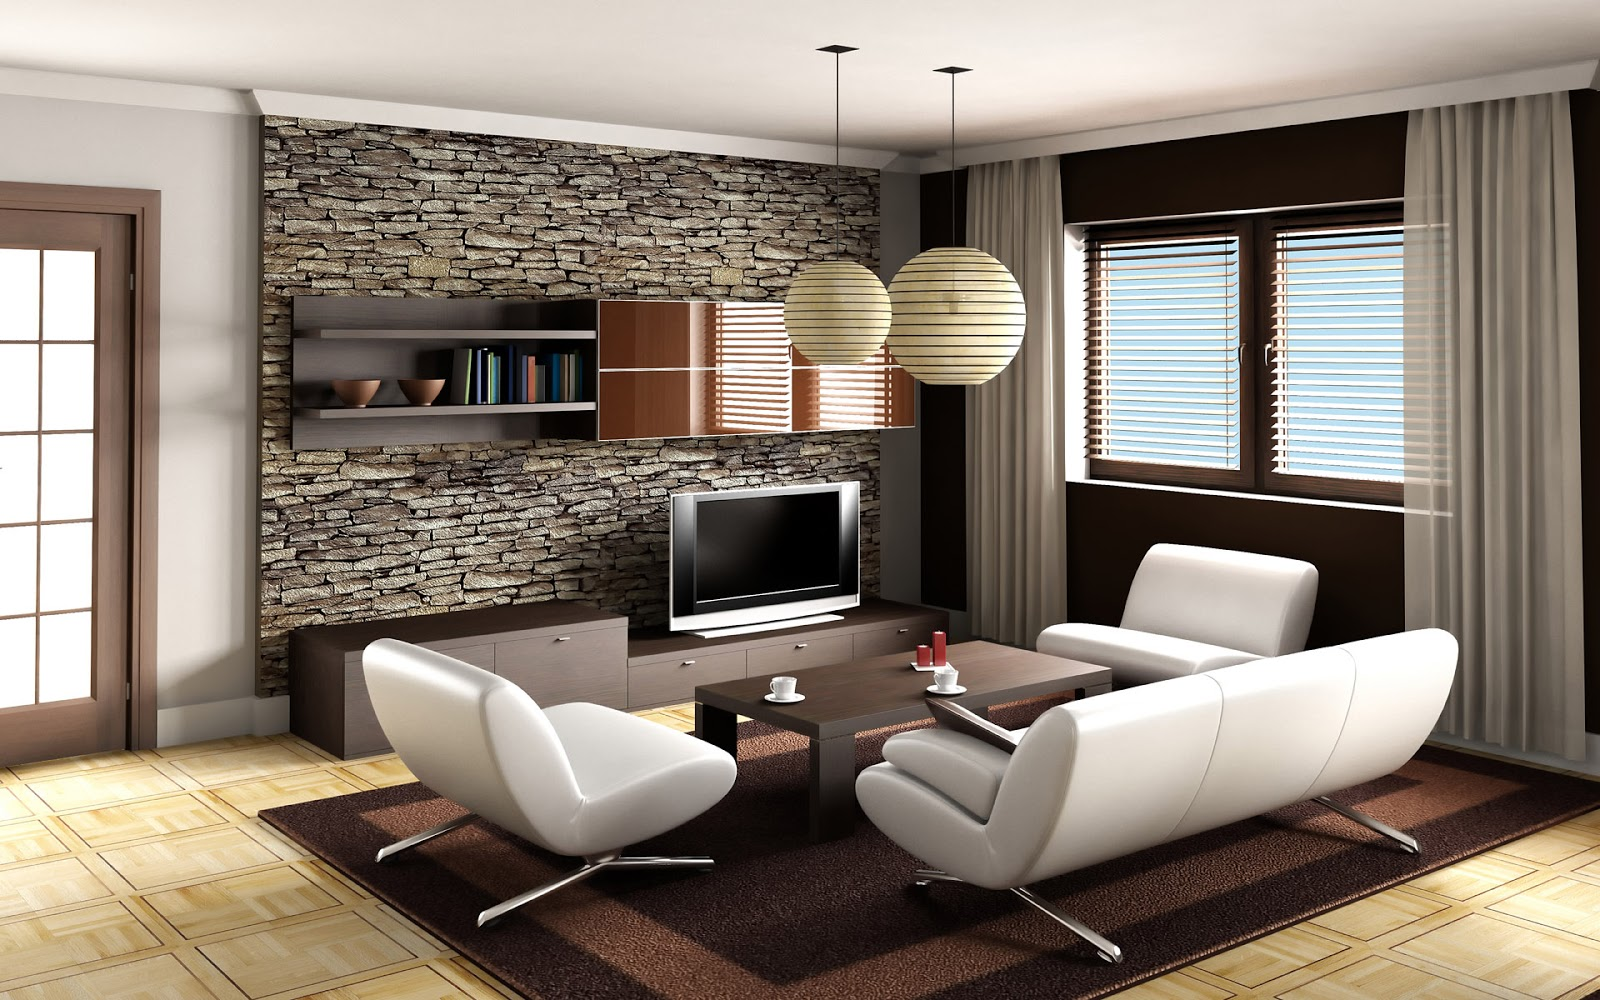 Arrangement of luxury living room ideas dream house for Minimalist living room decorating ideas